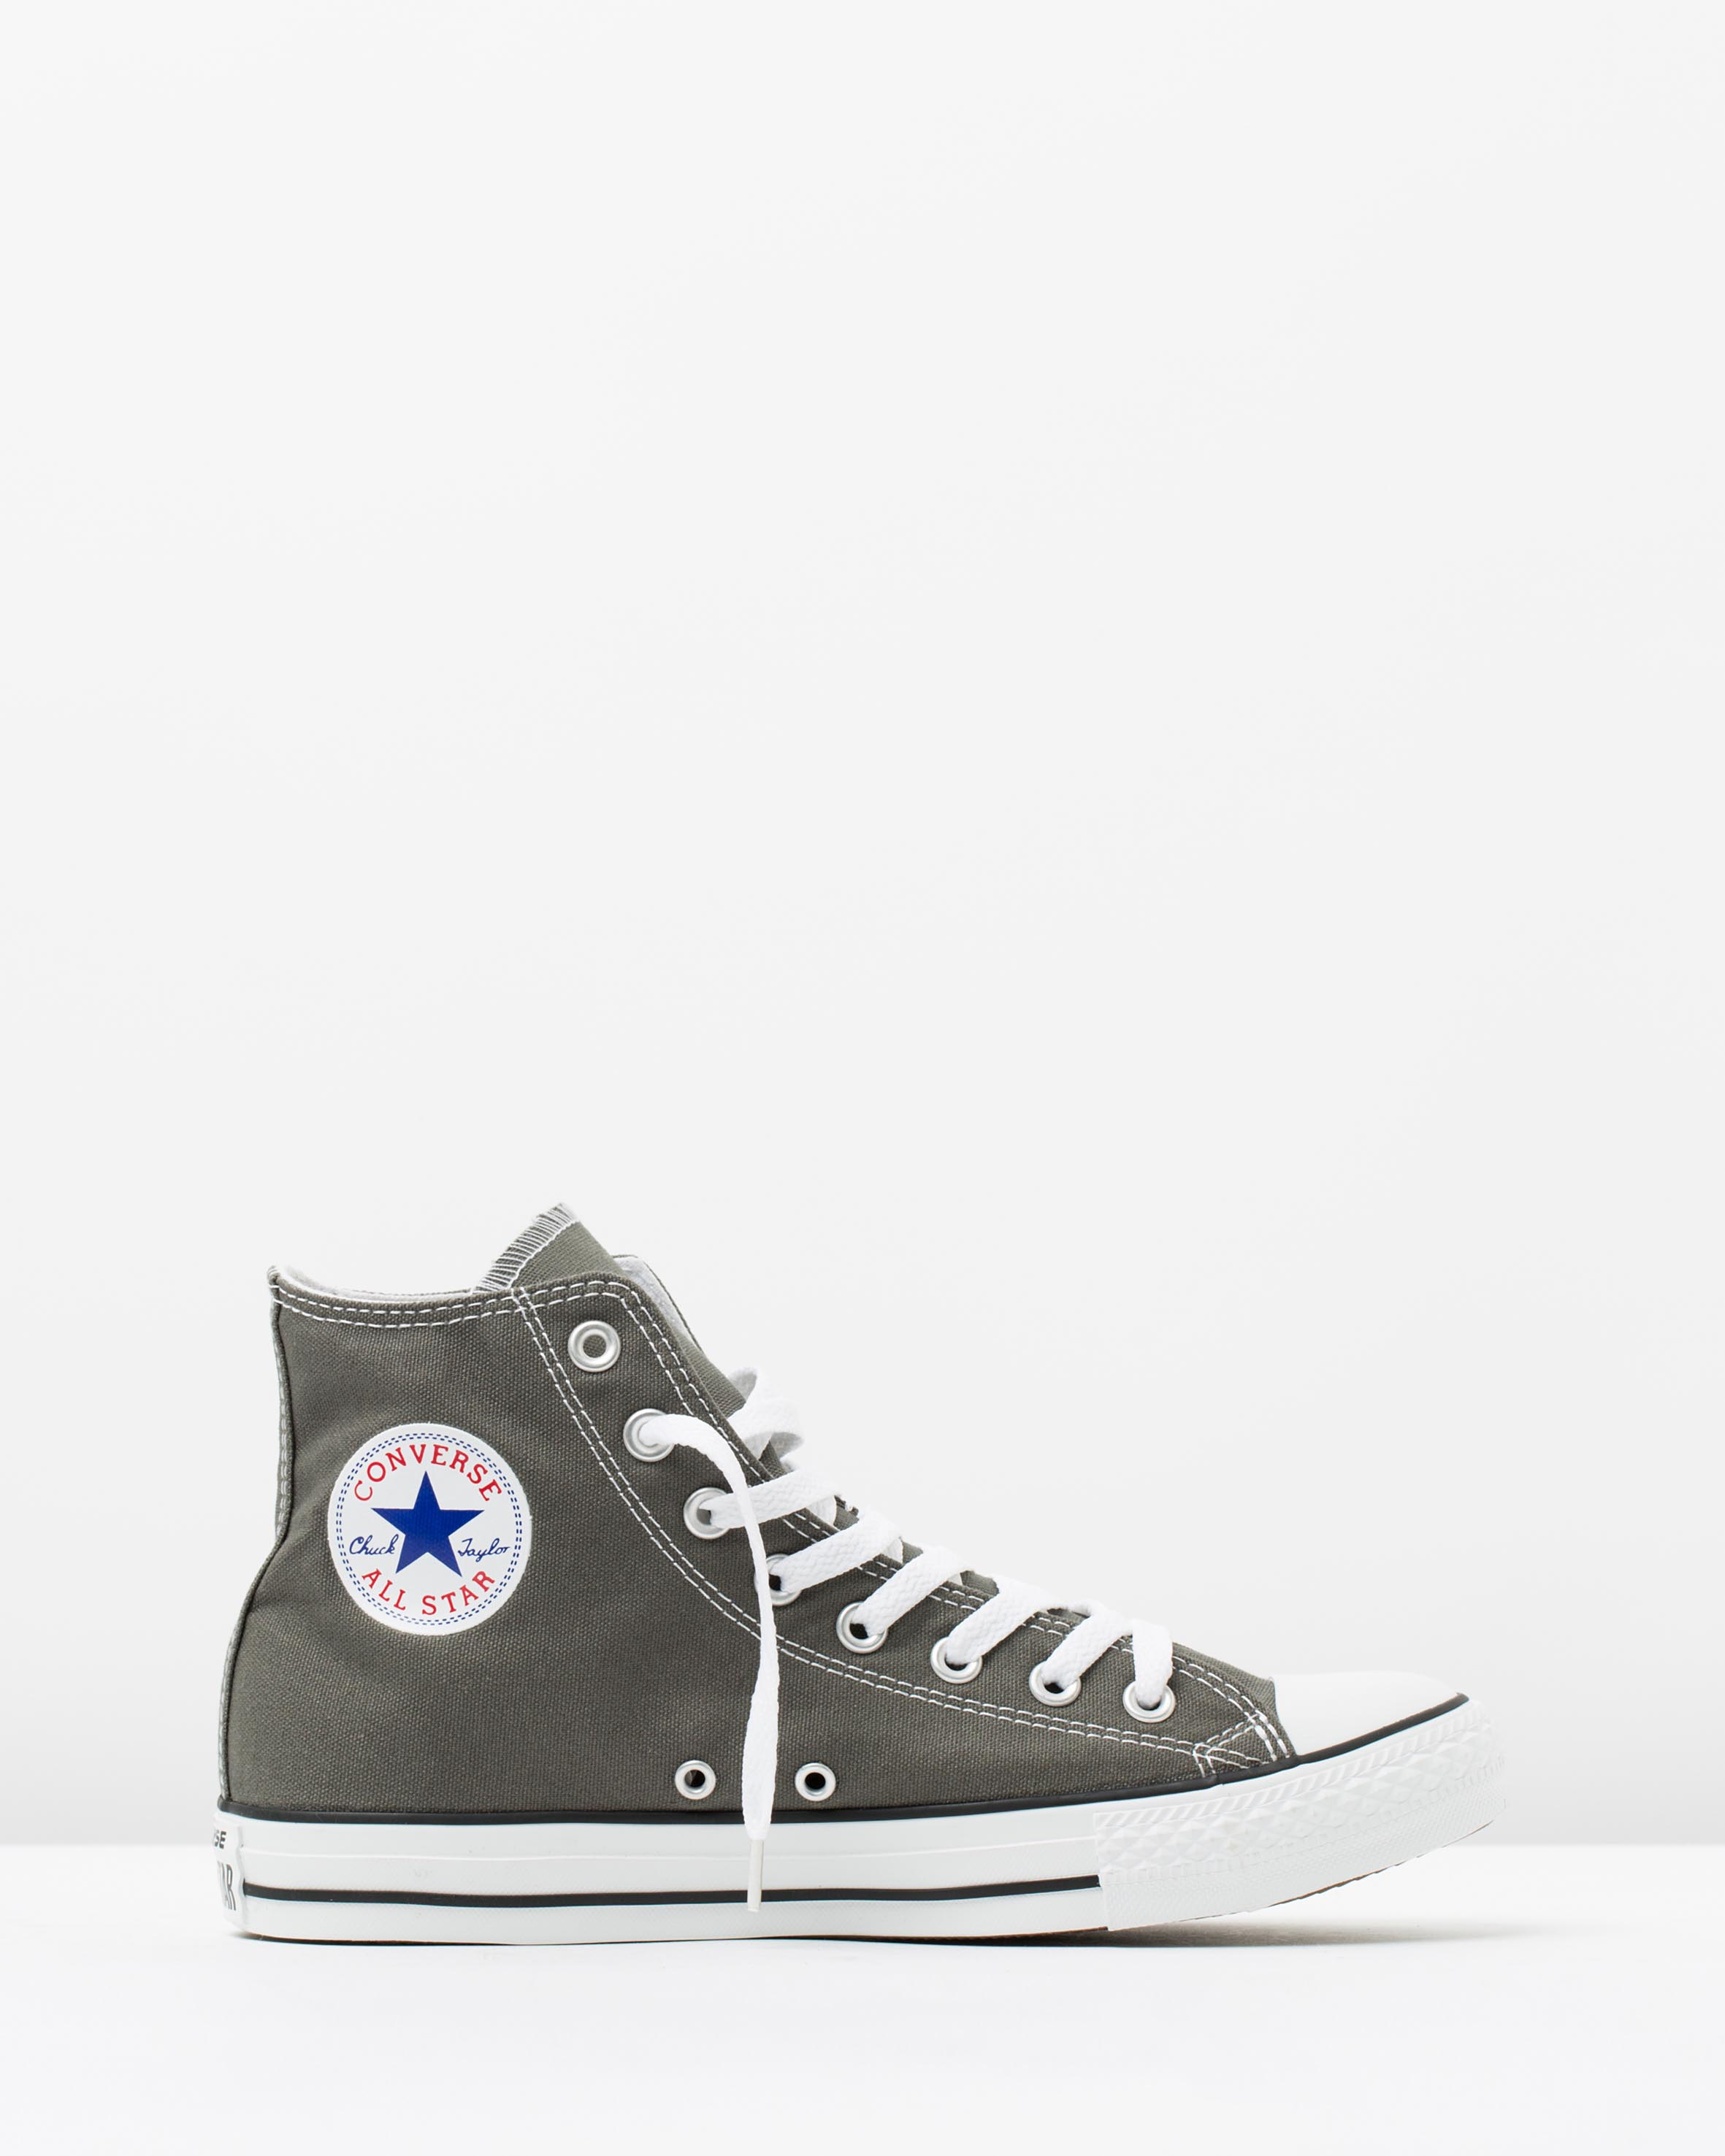 63c61c58e980 Converse Chuck Taylor All Star Hi Womens Charcoal 1 ...